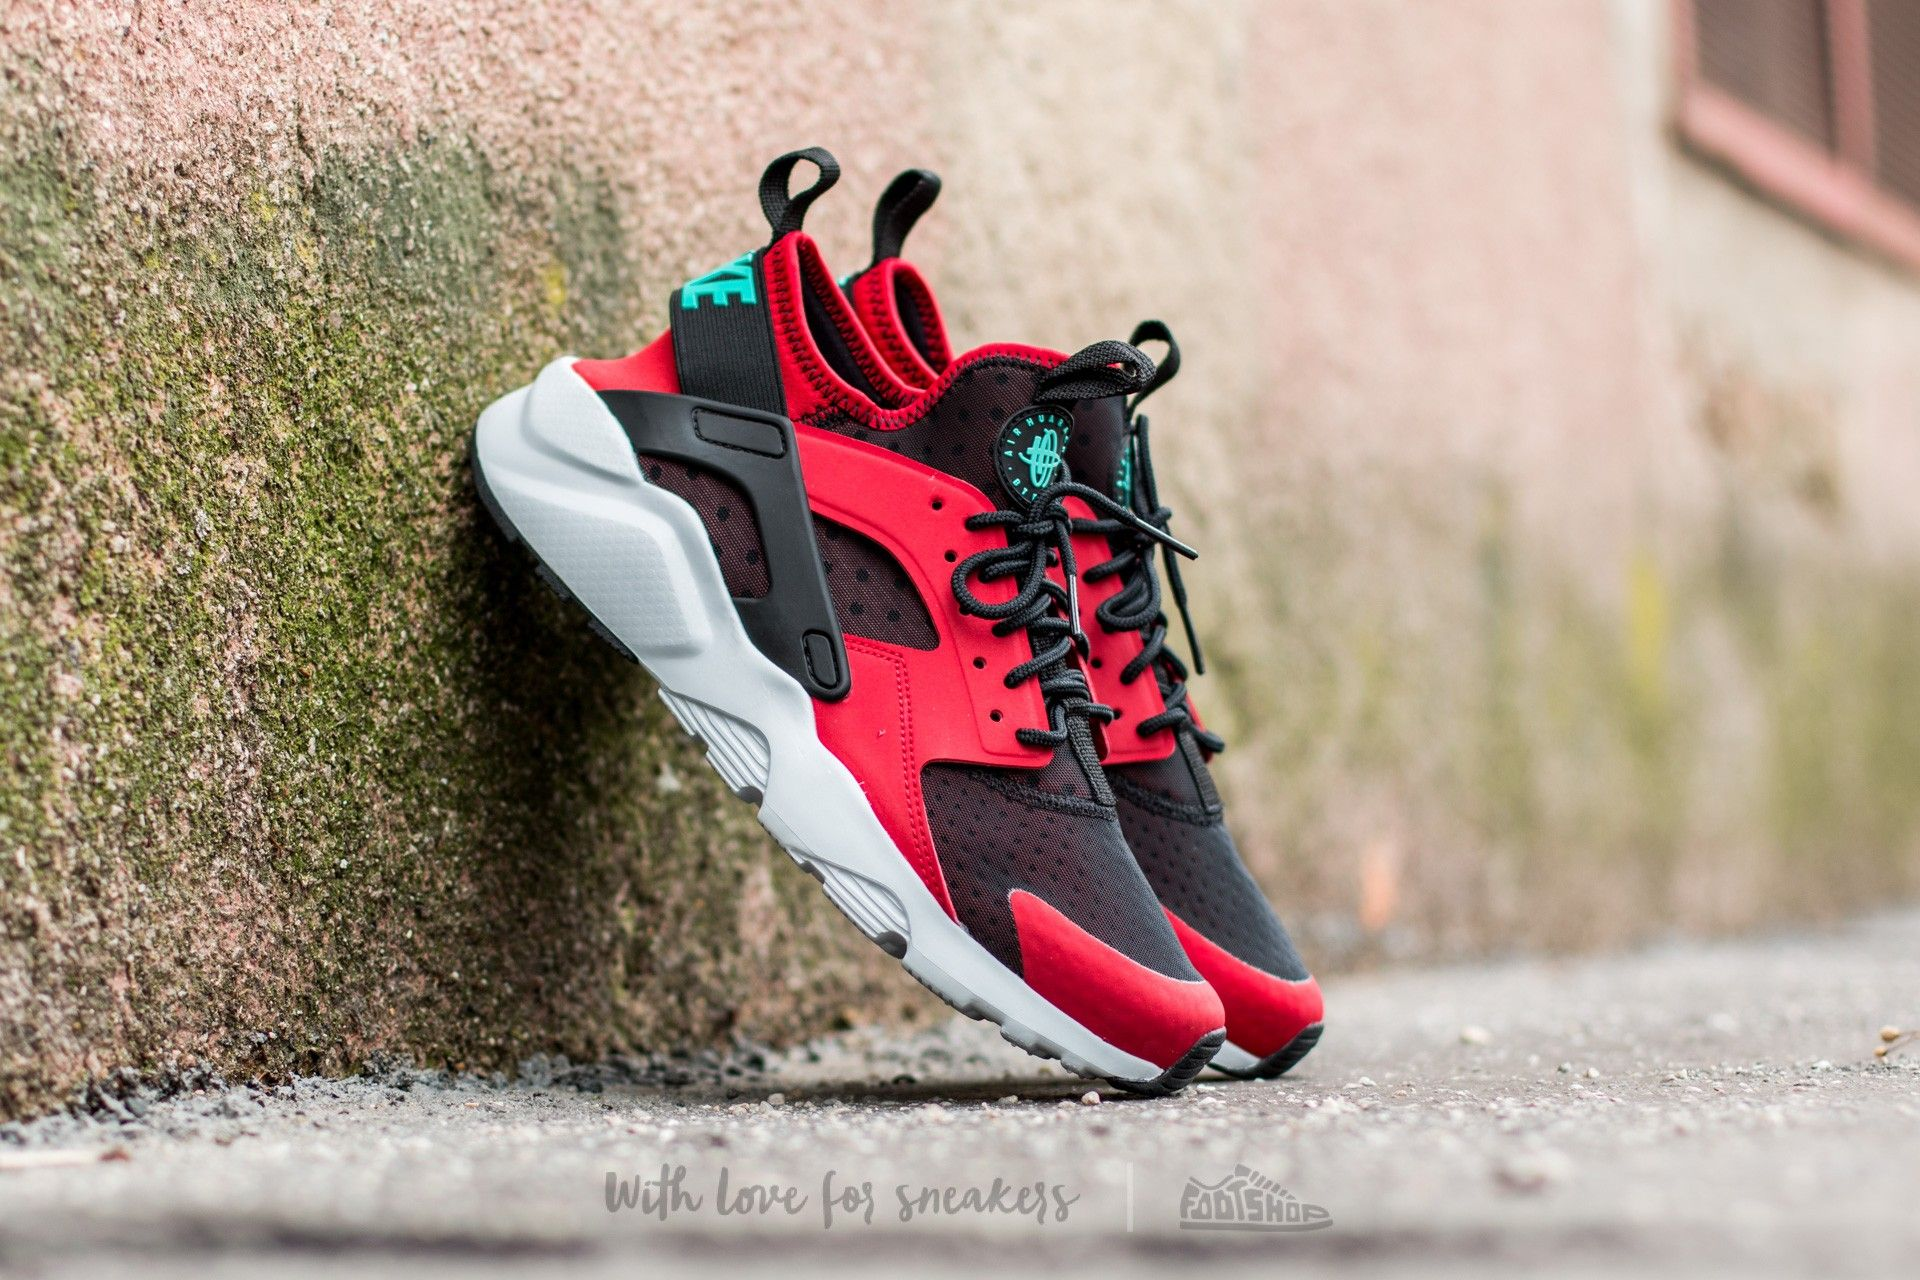 new product 7e982 76732 Nike Air Huarache Run Ultra Gym Red Clear Jade Black Pure Platinum Trainer